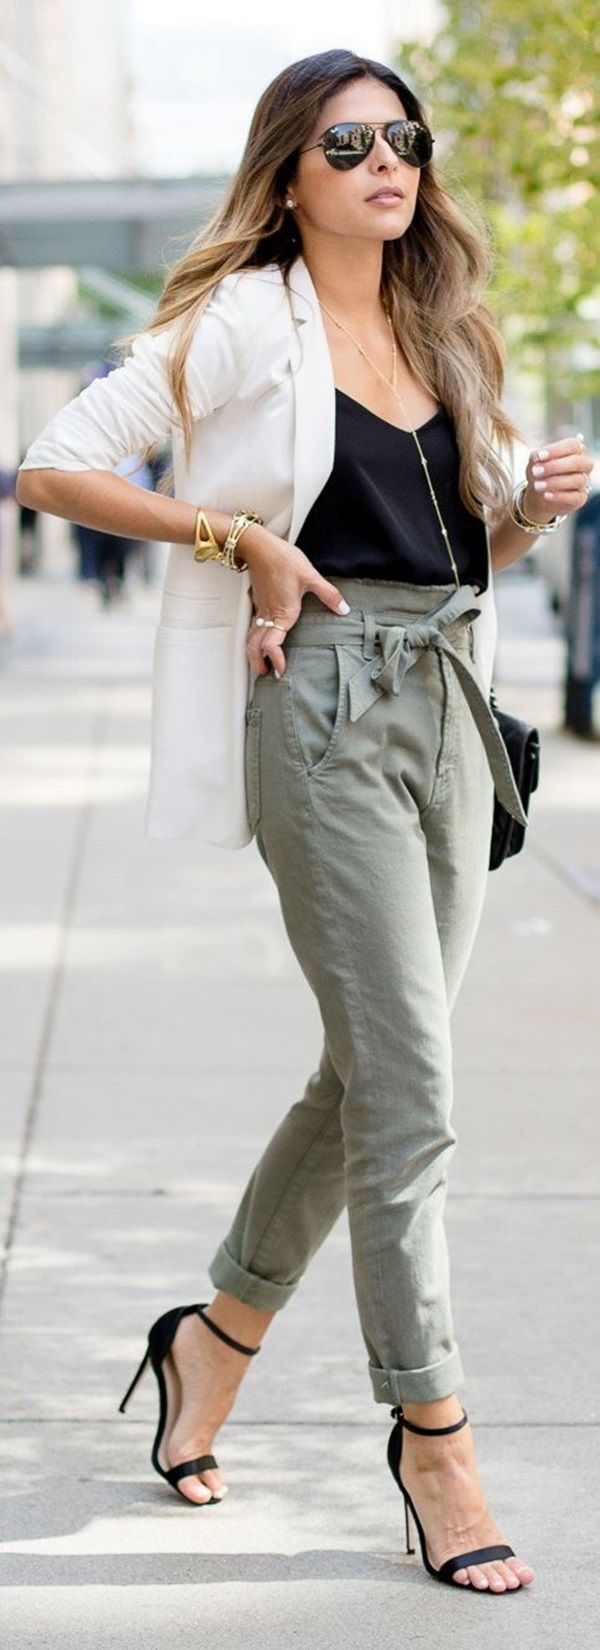 Best 25+ Comfy work outfit ideas only on Pinterest | Casual work ...